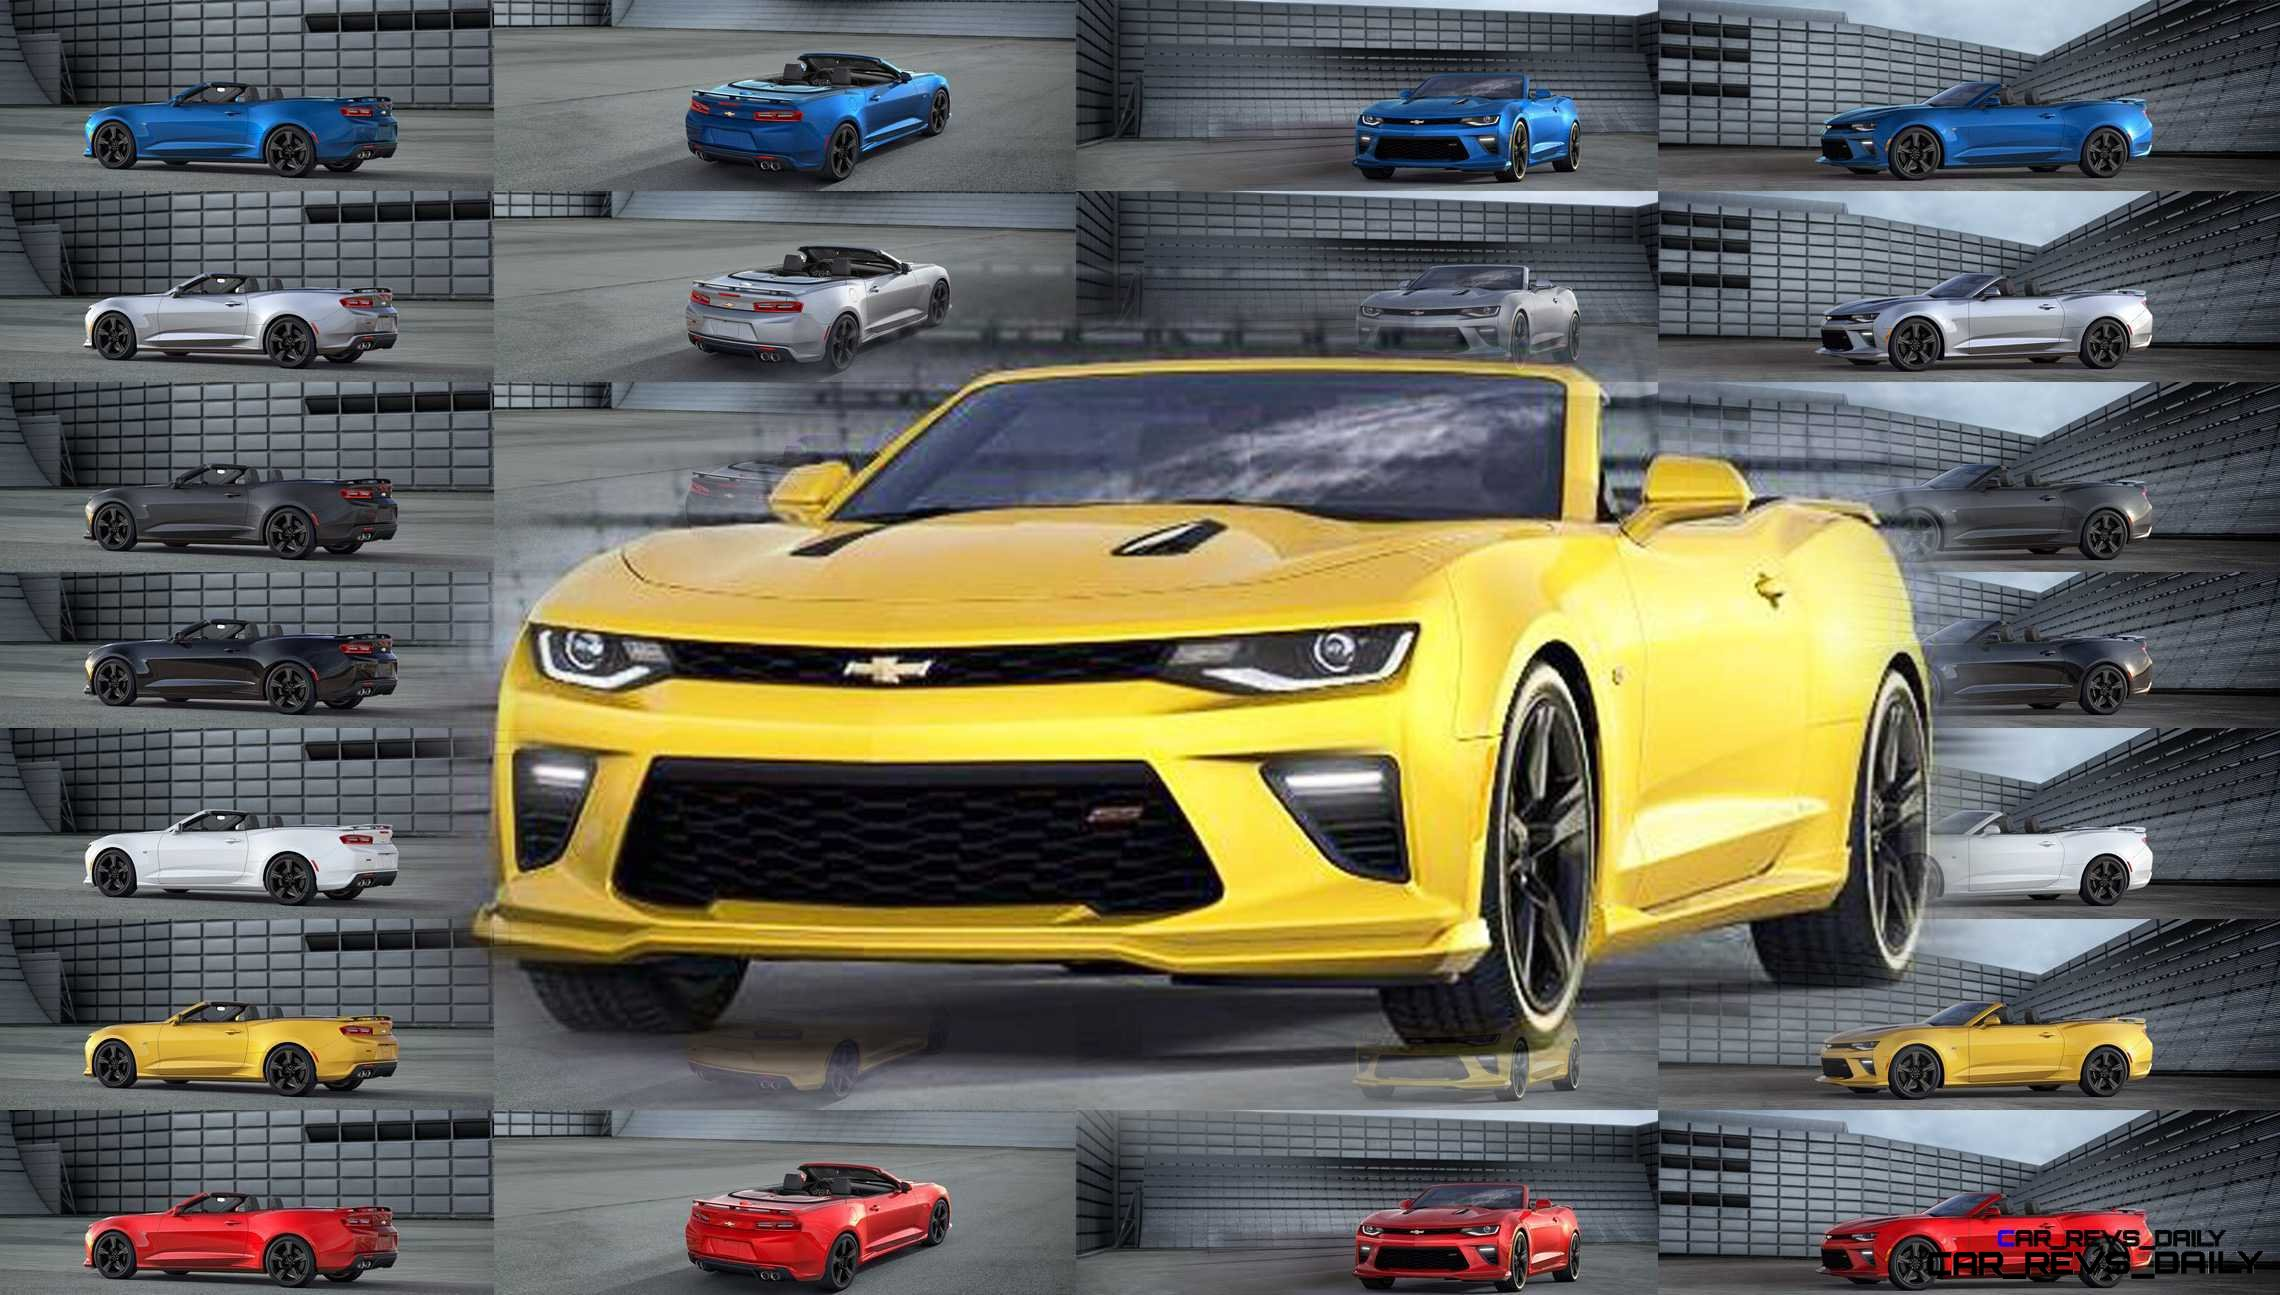 2016 Chevrolet Camaro Pricing Animated Colors And Wheels Visualizer